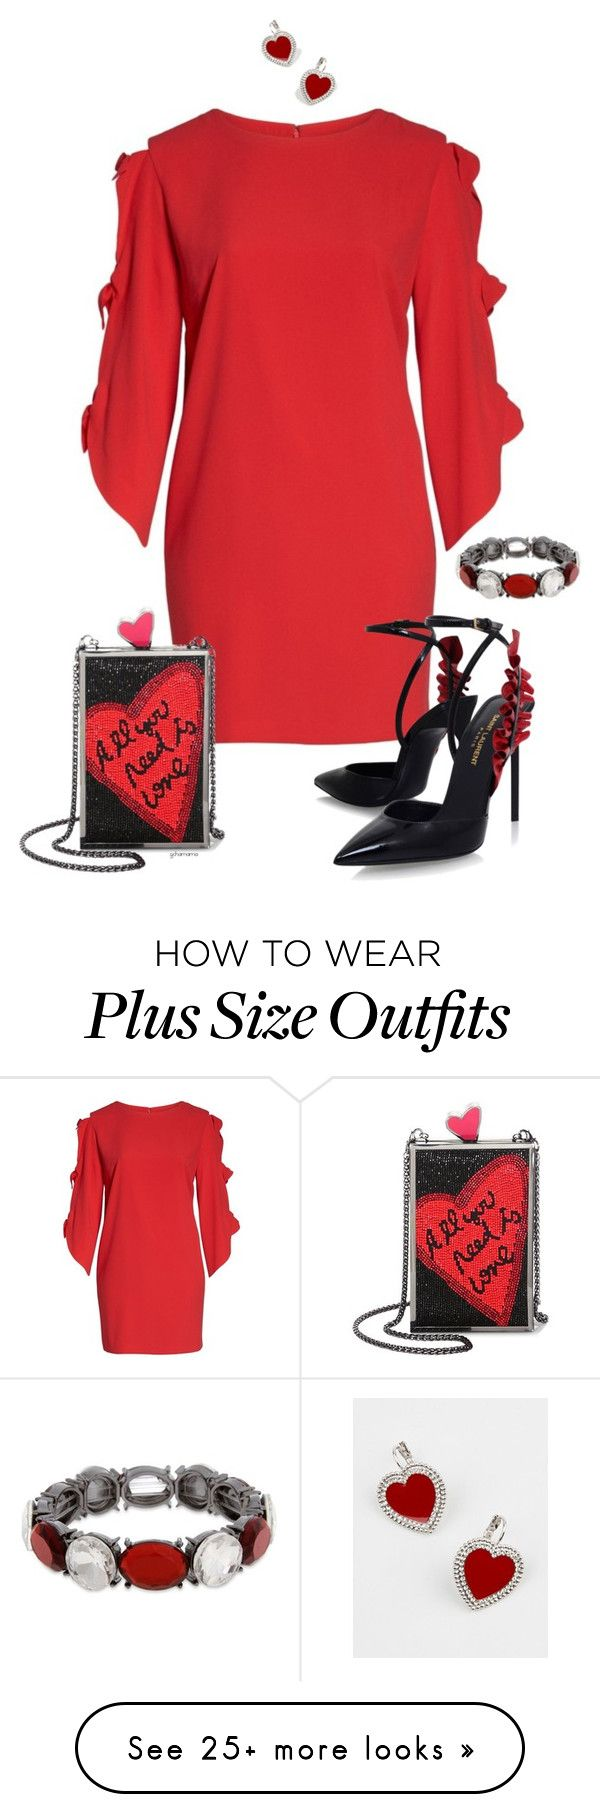 """Valentine's date- plus size"" by gchamama on Polyvore featuring Vince Camuto, Alice + Olivia, Yves Saint Laurent and Erica Lyons"